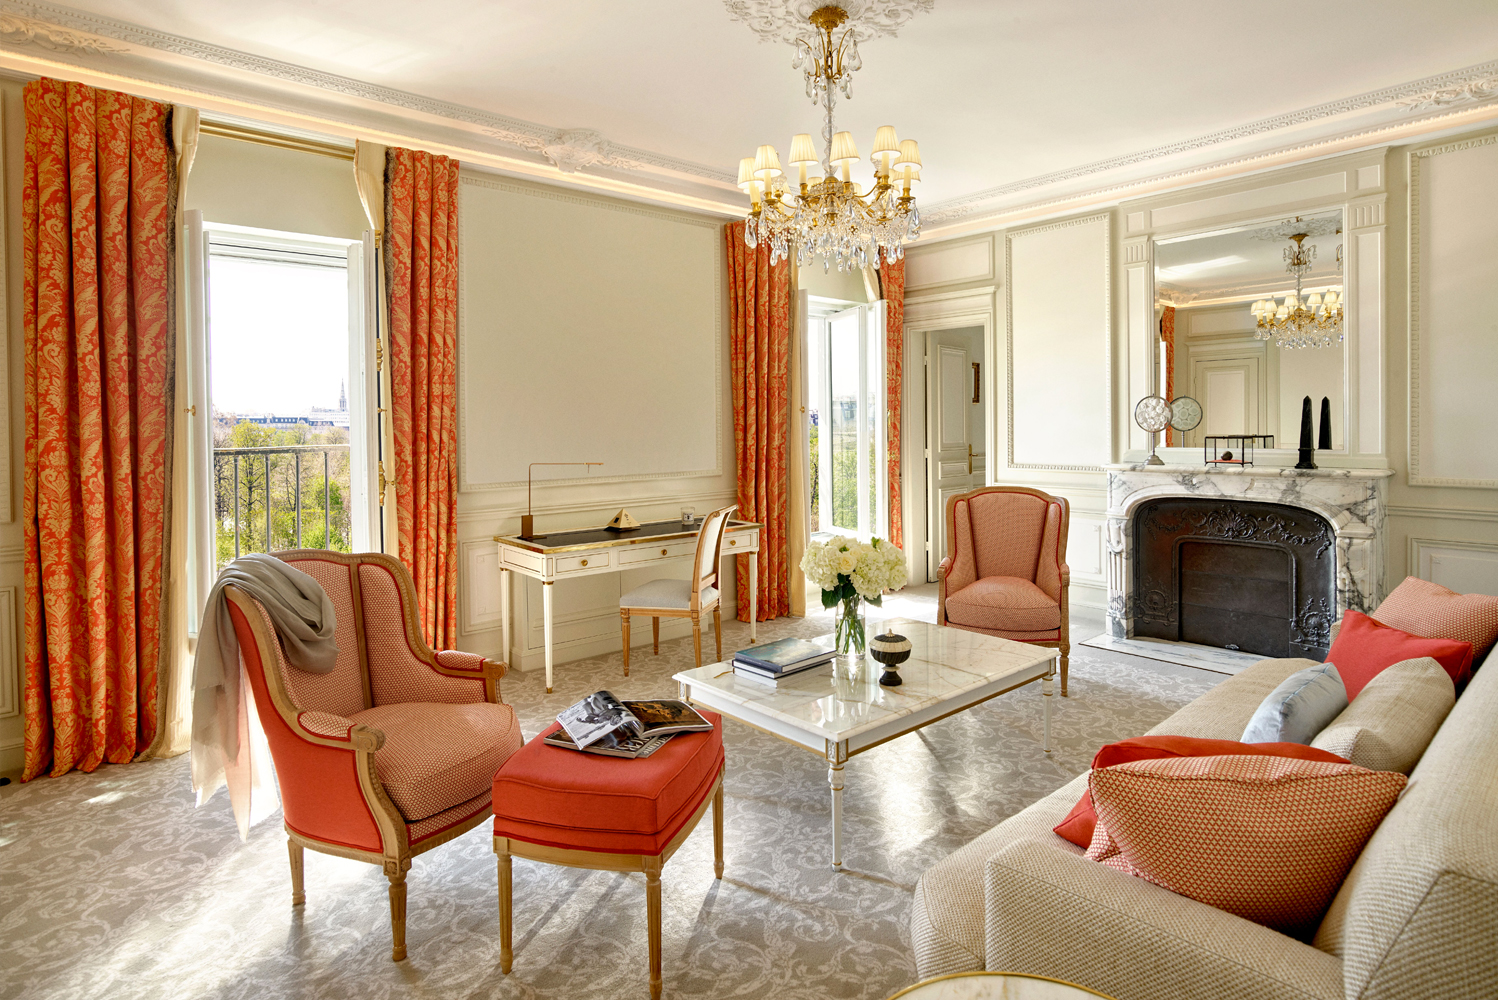 Charles Jouffre, Le Meurice's interior designer of 10 years and creator of the drapes at the Opera Garnier, worked with designers Margaux Lally and Luc Berger of interior design studio Lally & Berger for the renovation.